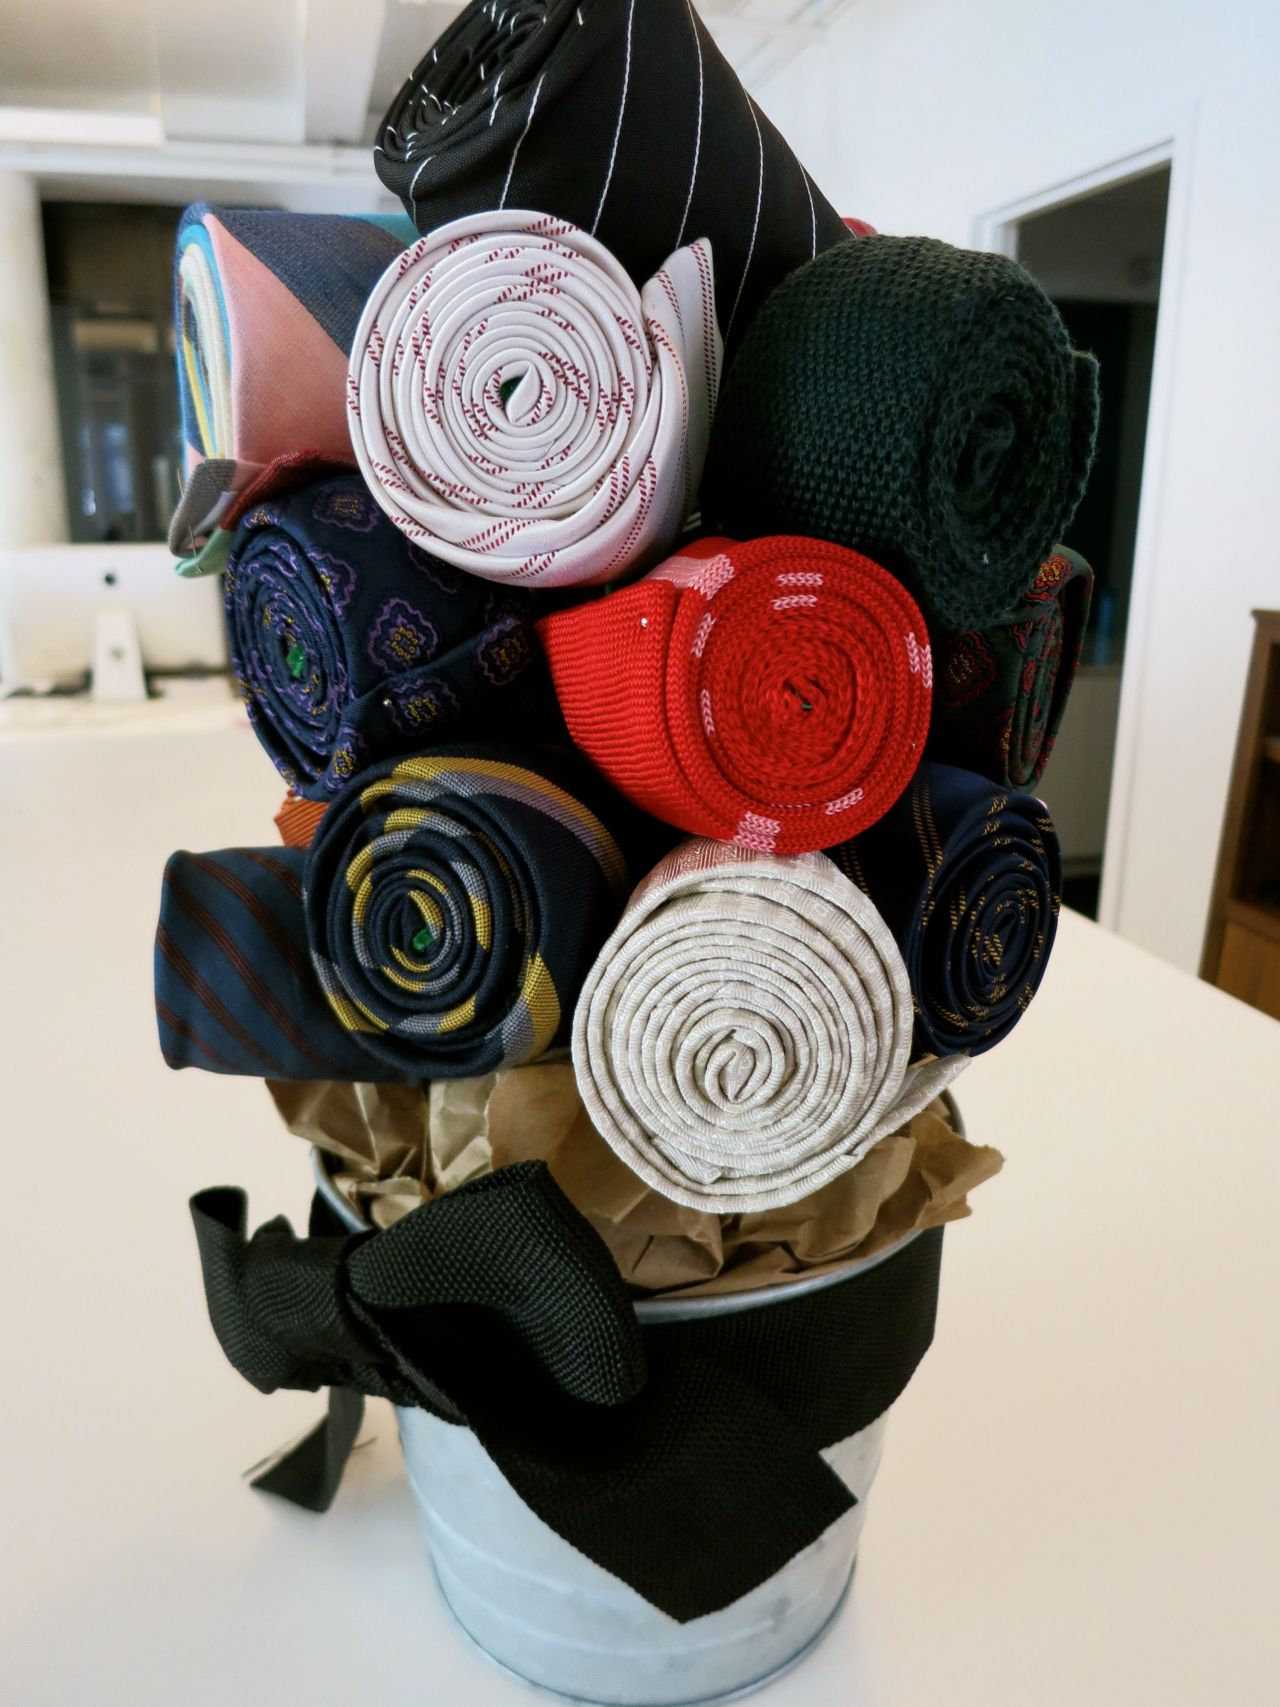 THANK YOU Band of Outsiders for the most triumphant and thrilling tie bouquet ever!